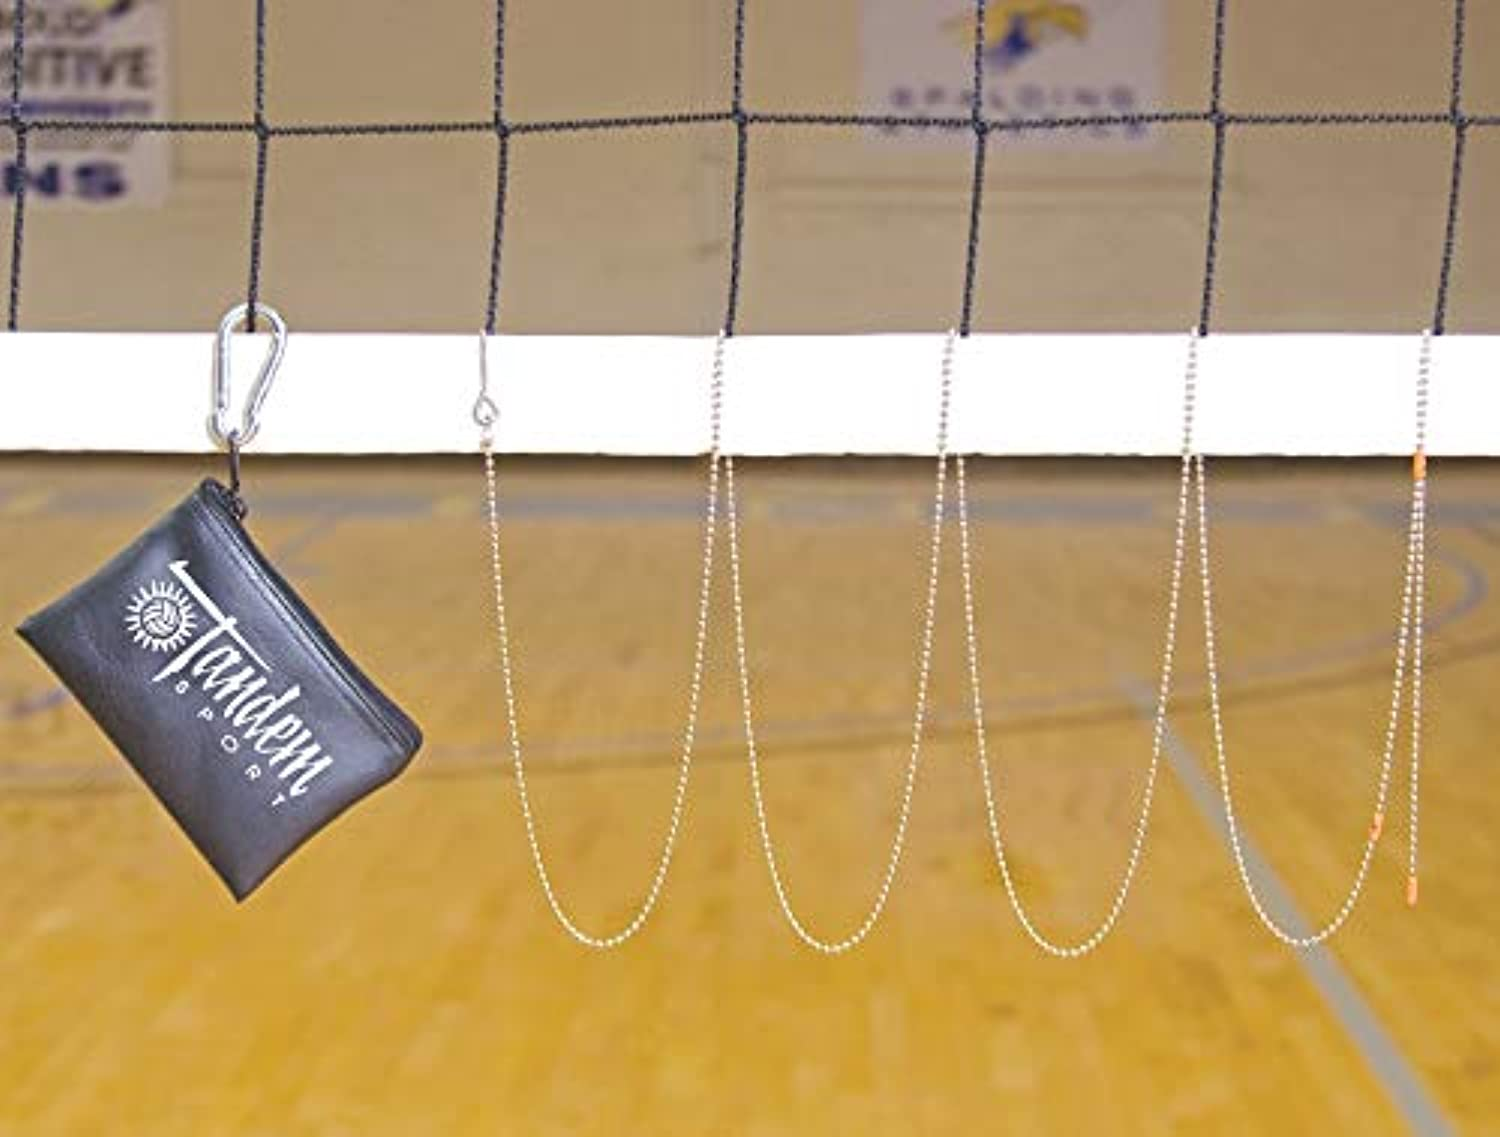 Tandem Sport Volleyball Net Setter with Pouch